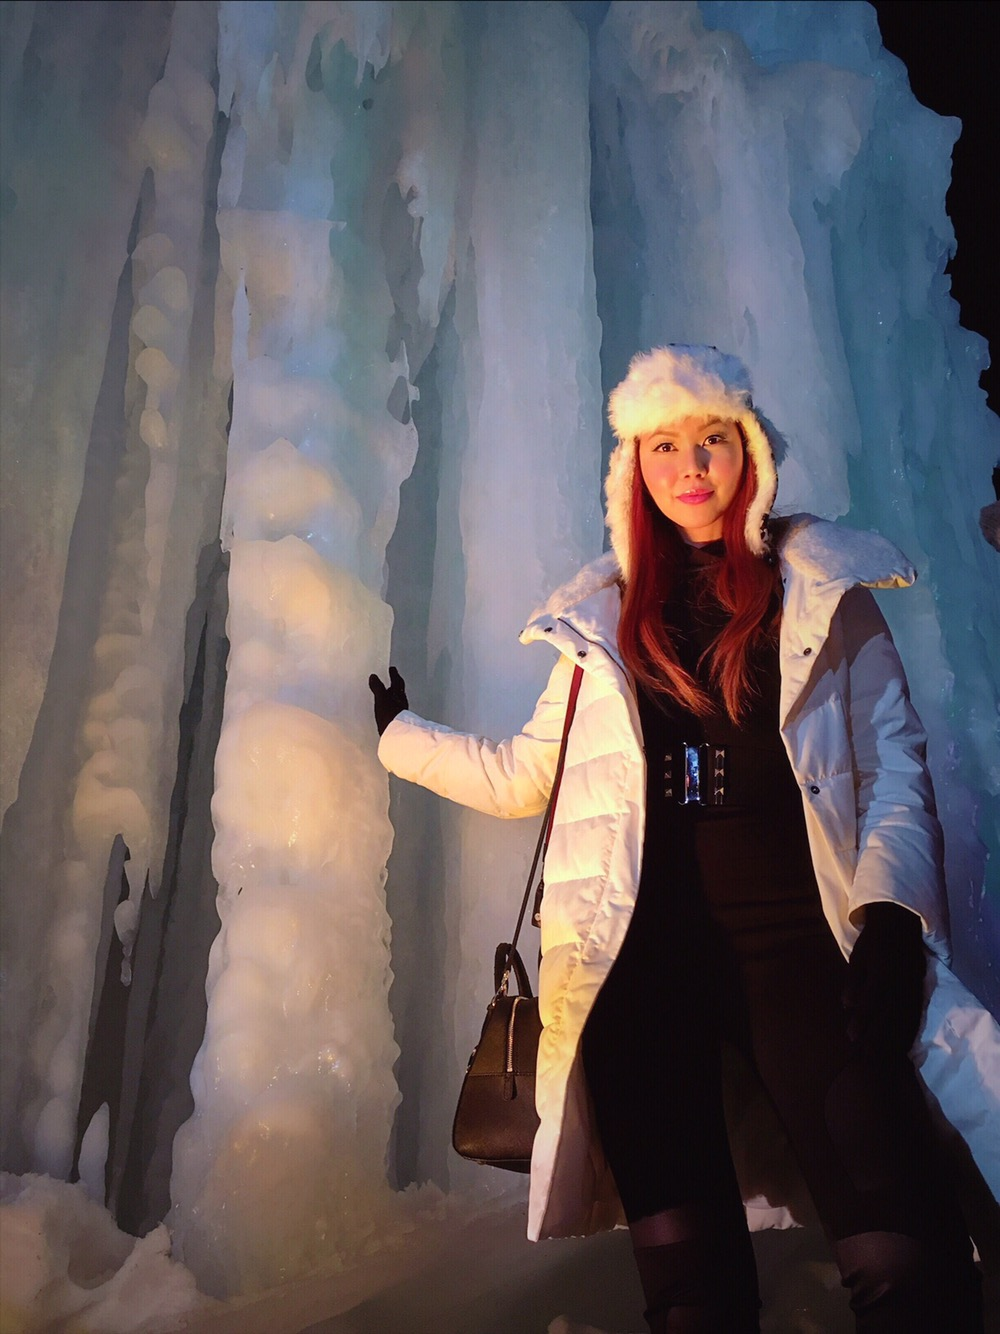 Bianca Valerio at Sounkyo Hot Springs Ice Festival